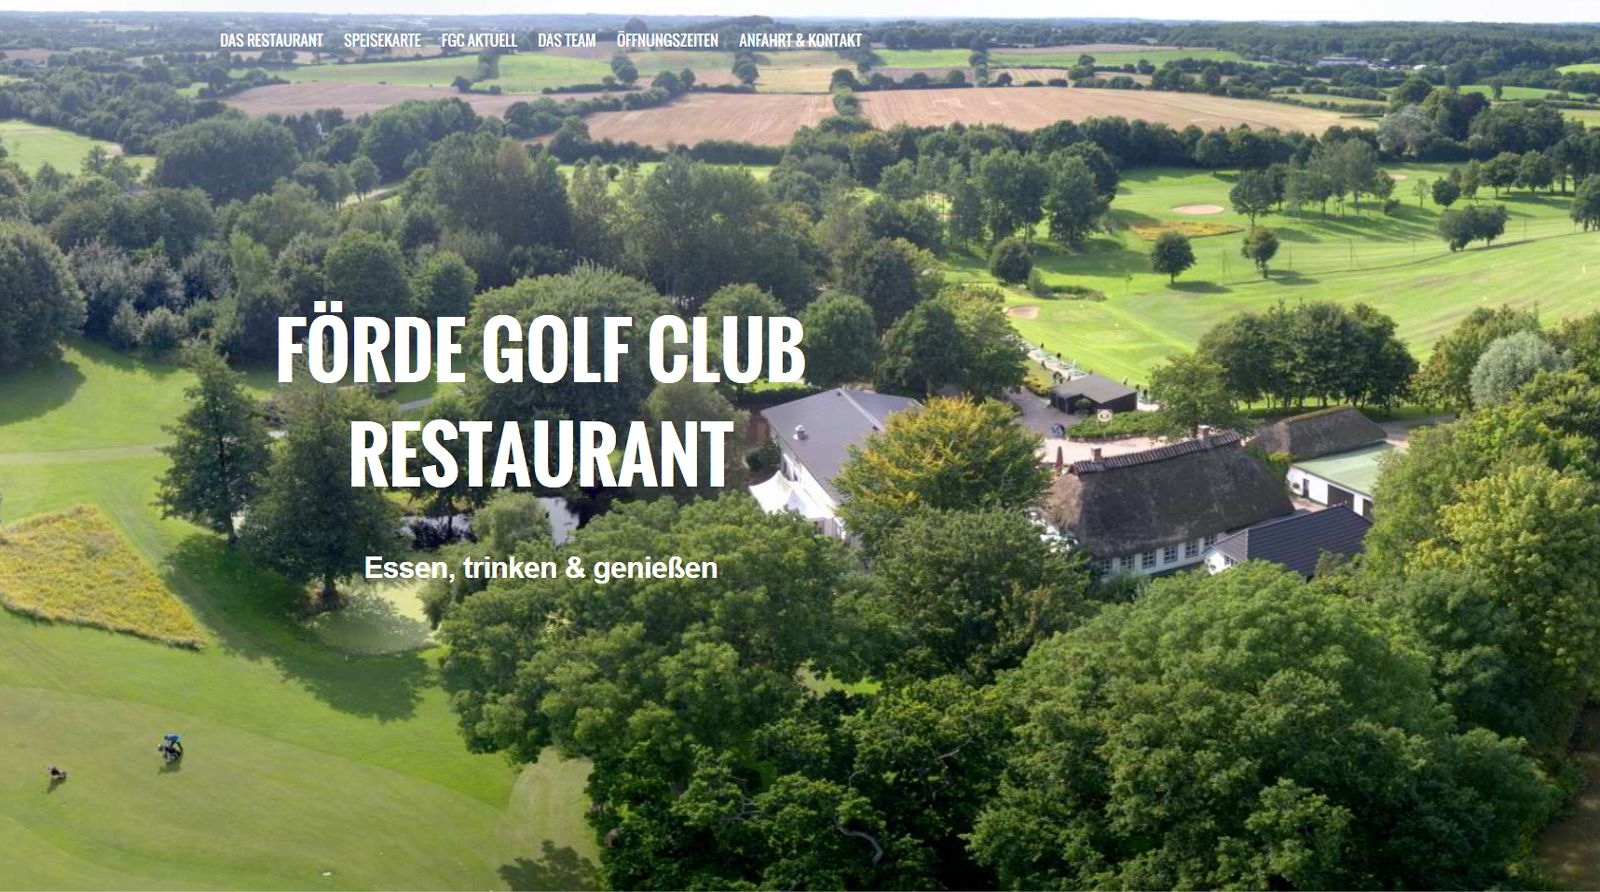 Förde Golf Club Restaurant